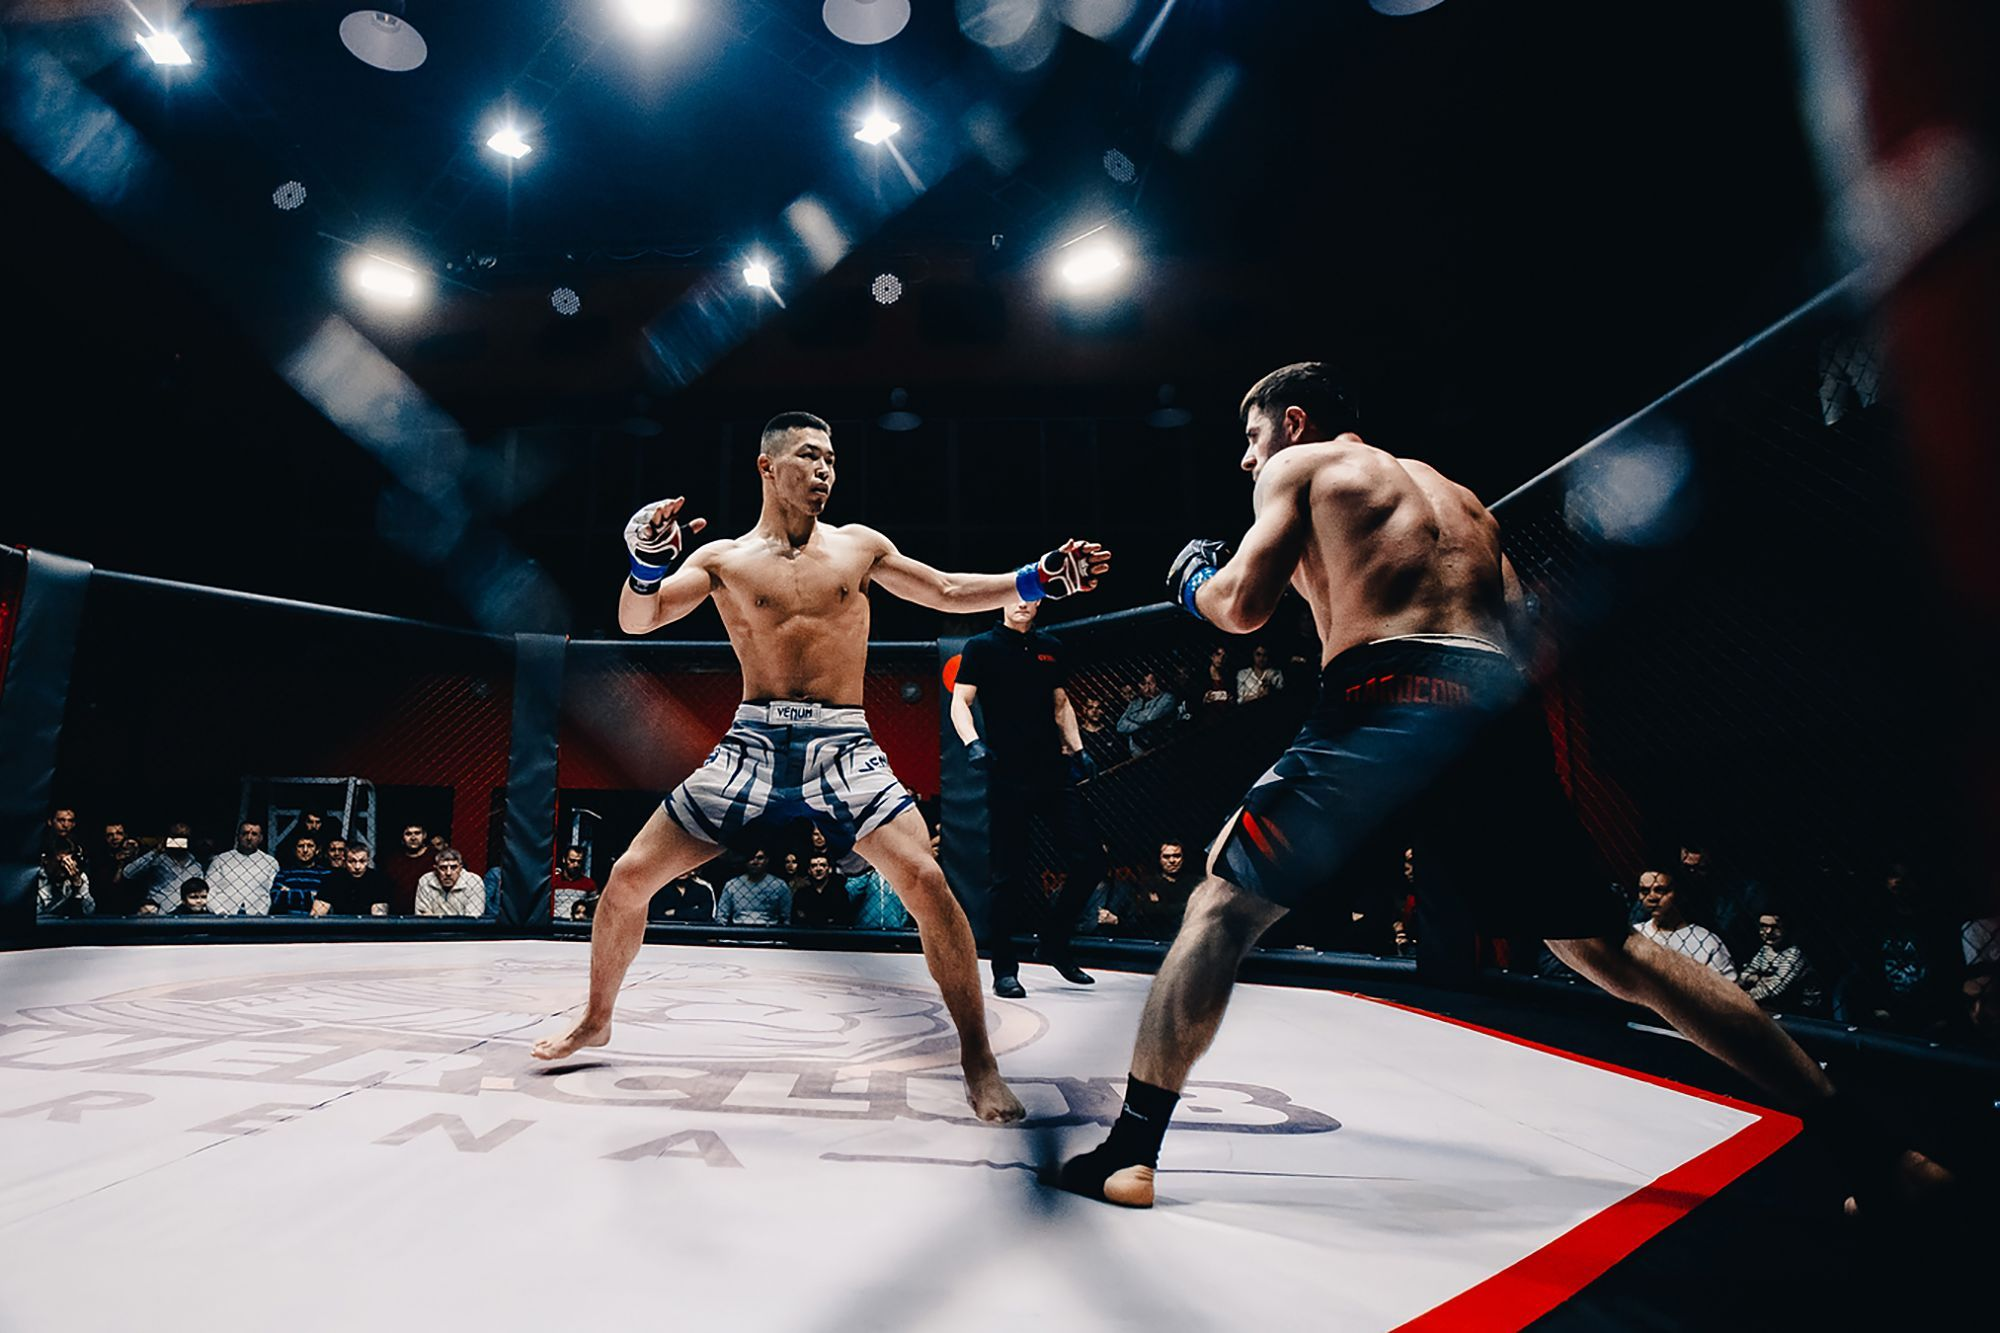 How Cbd Entered The World Of Mixed Martial Arts Mixed Martial Arts Martial Martial Arts